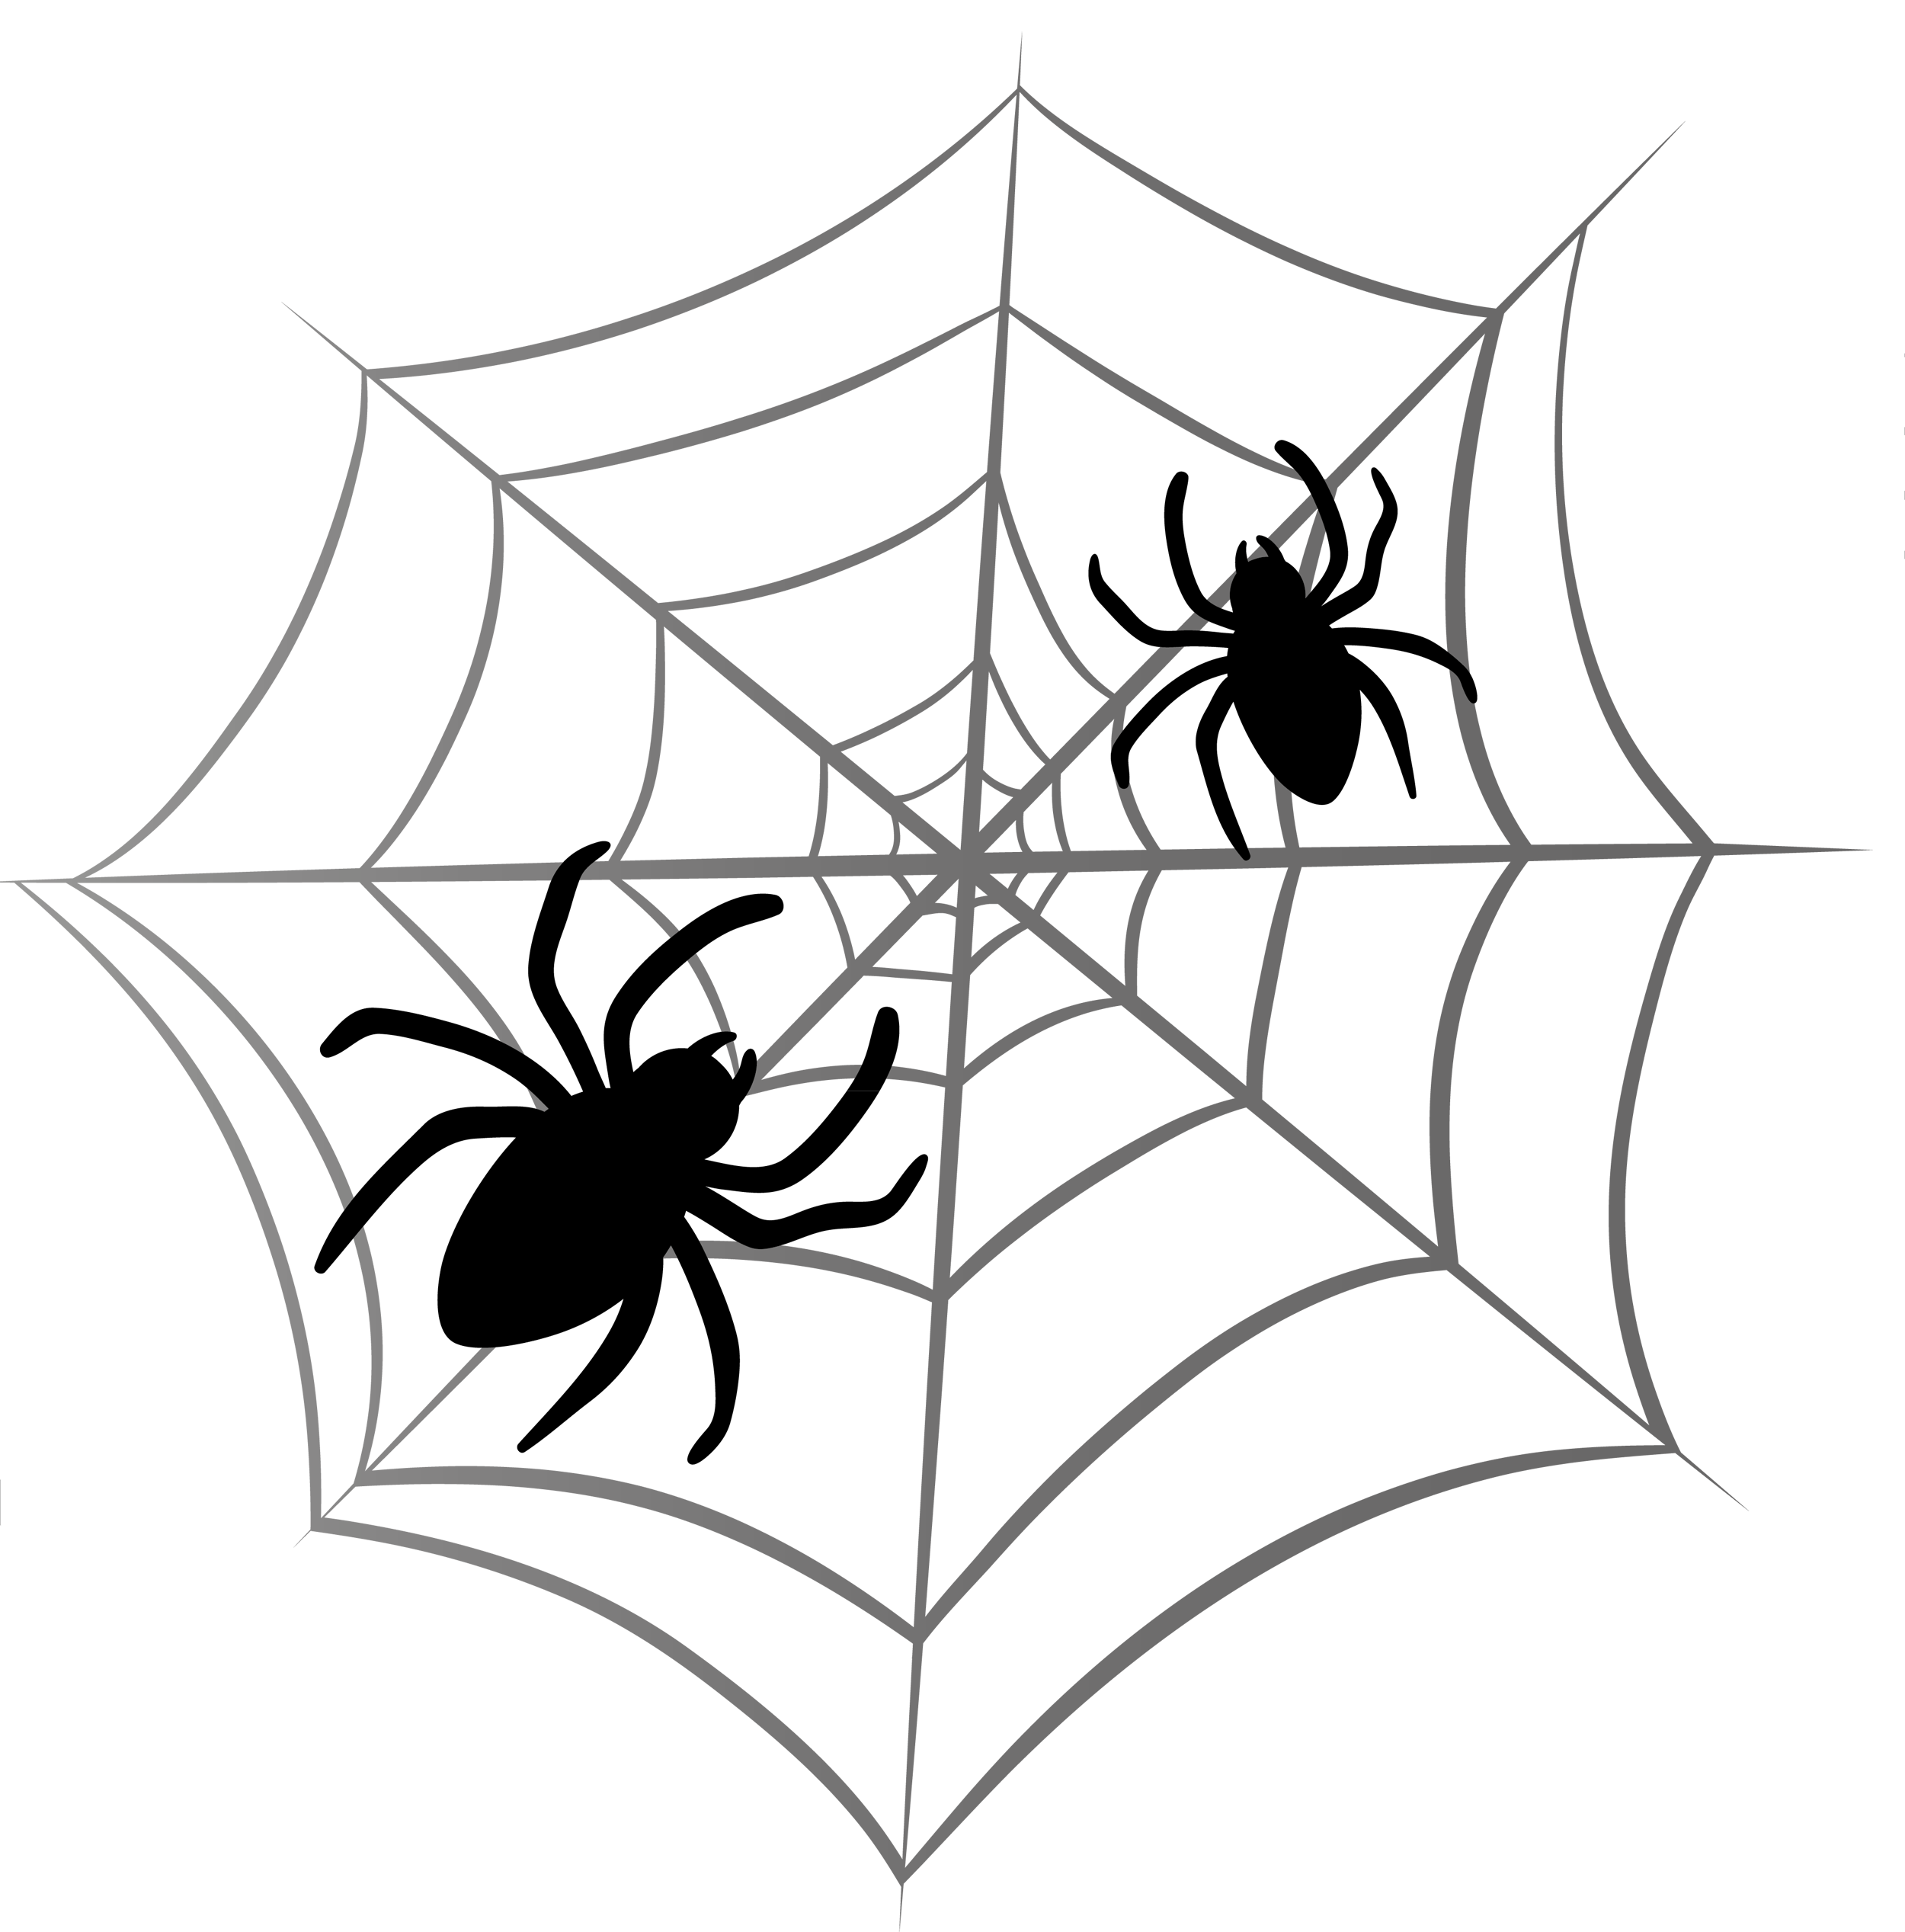 Best Spider Web Png Clipart image #34741